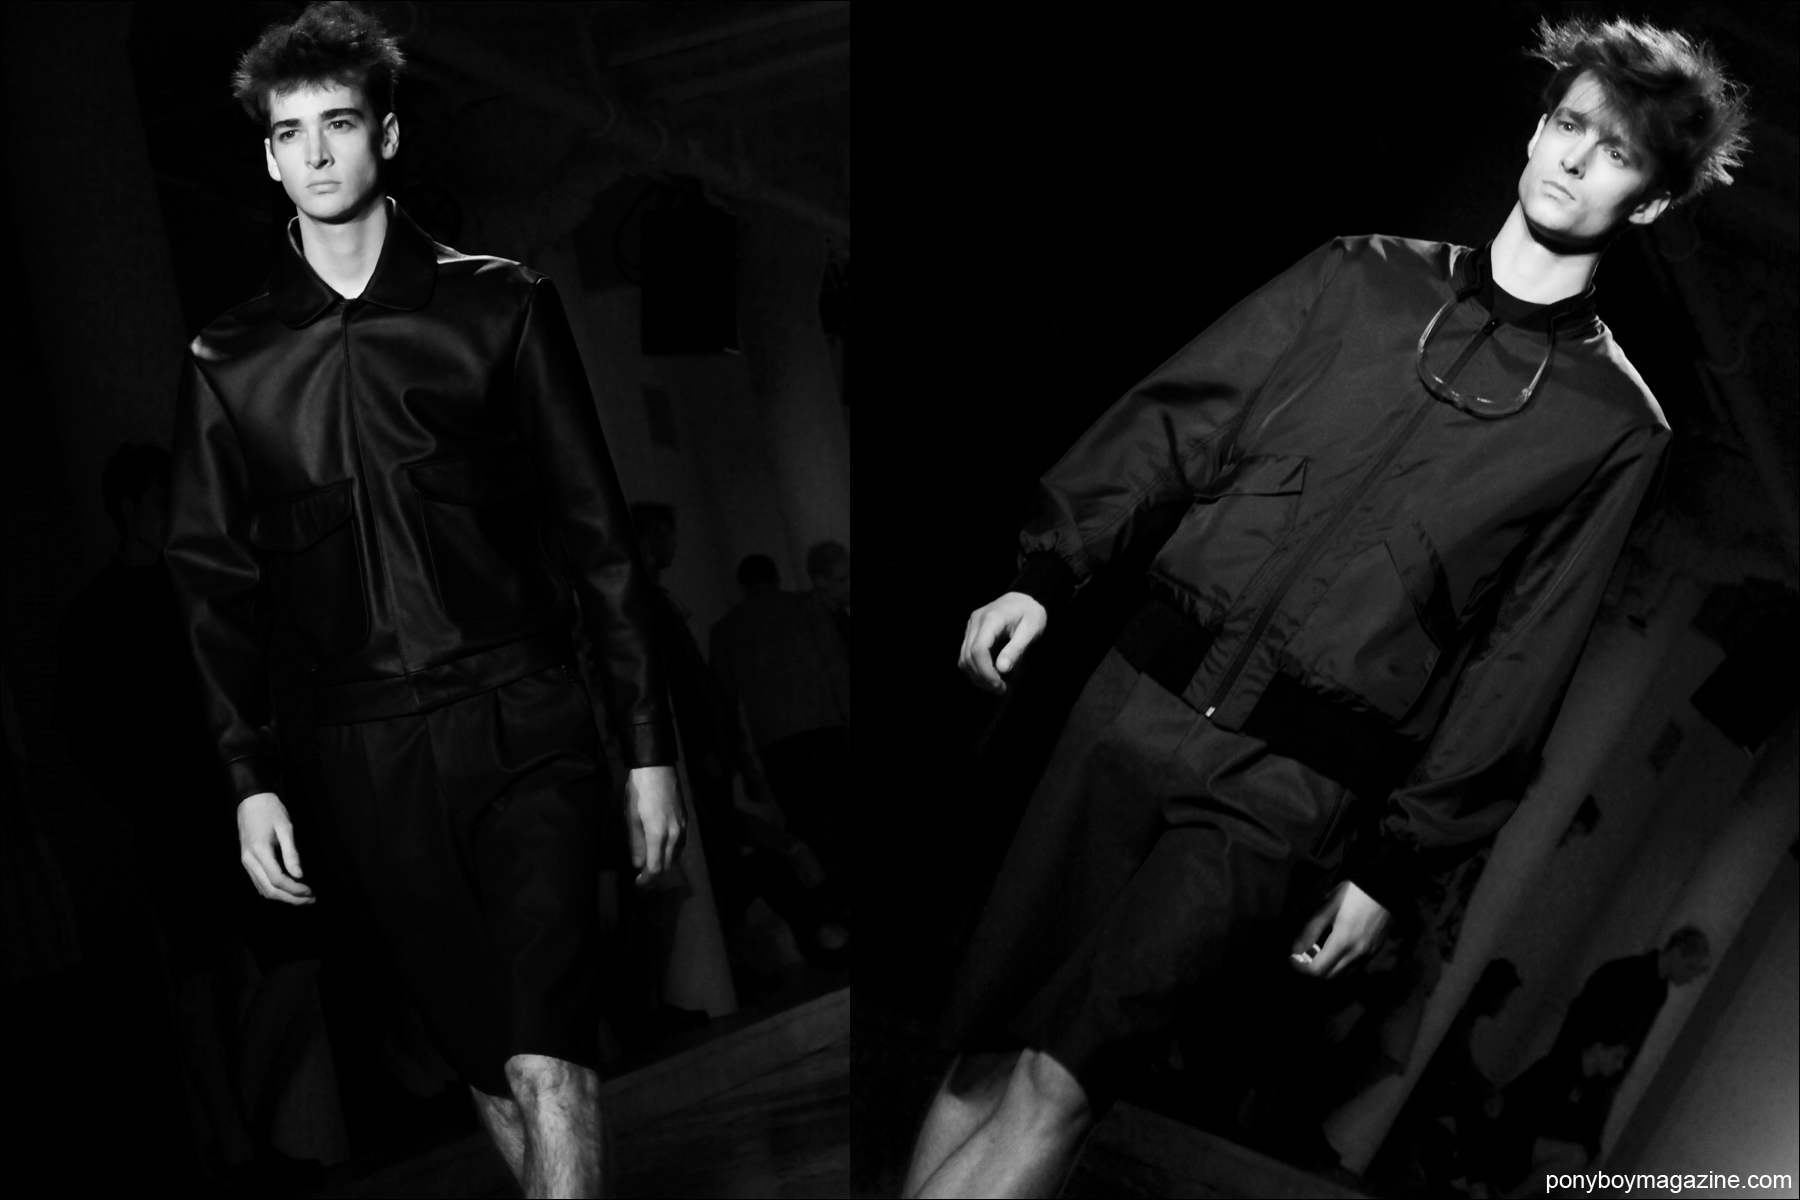 Models Corentin Renault and Laurie Harding walk for Patrik Ervell S/S15 collection at Milk Studios. Photographs by Alexander Thompson for Ponyboy Magazine.